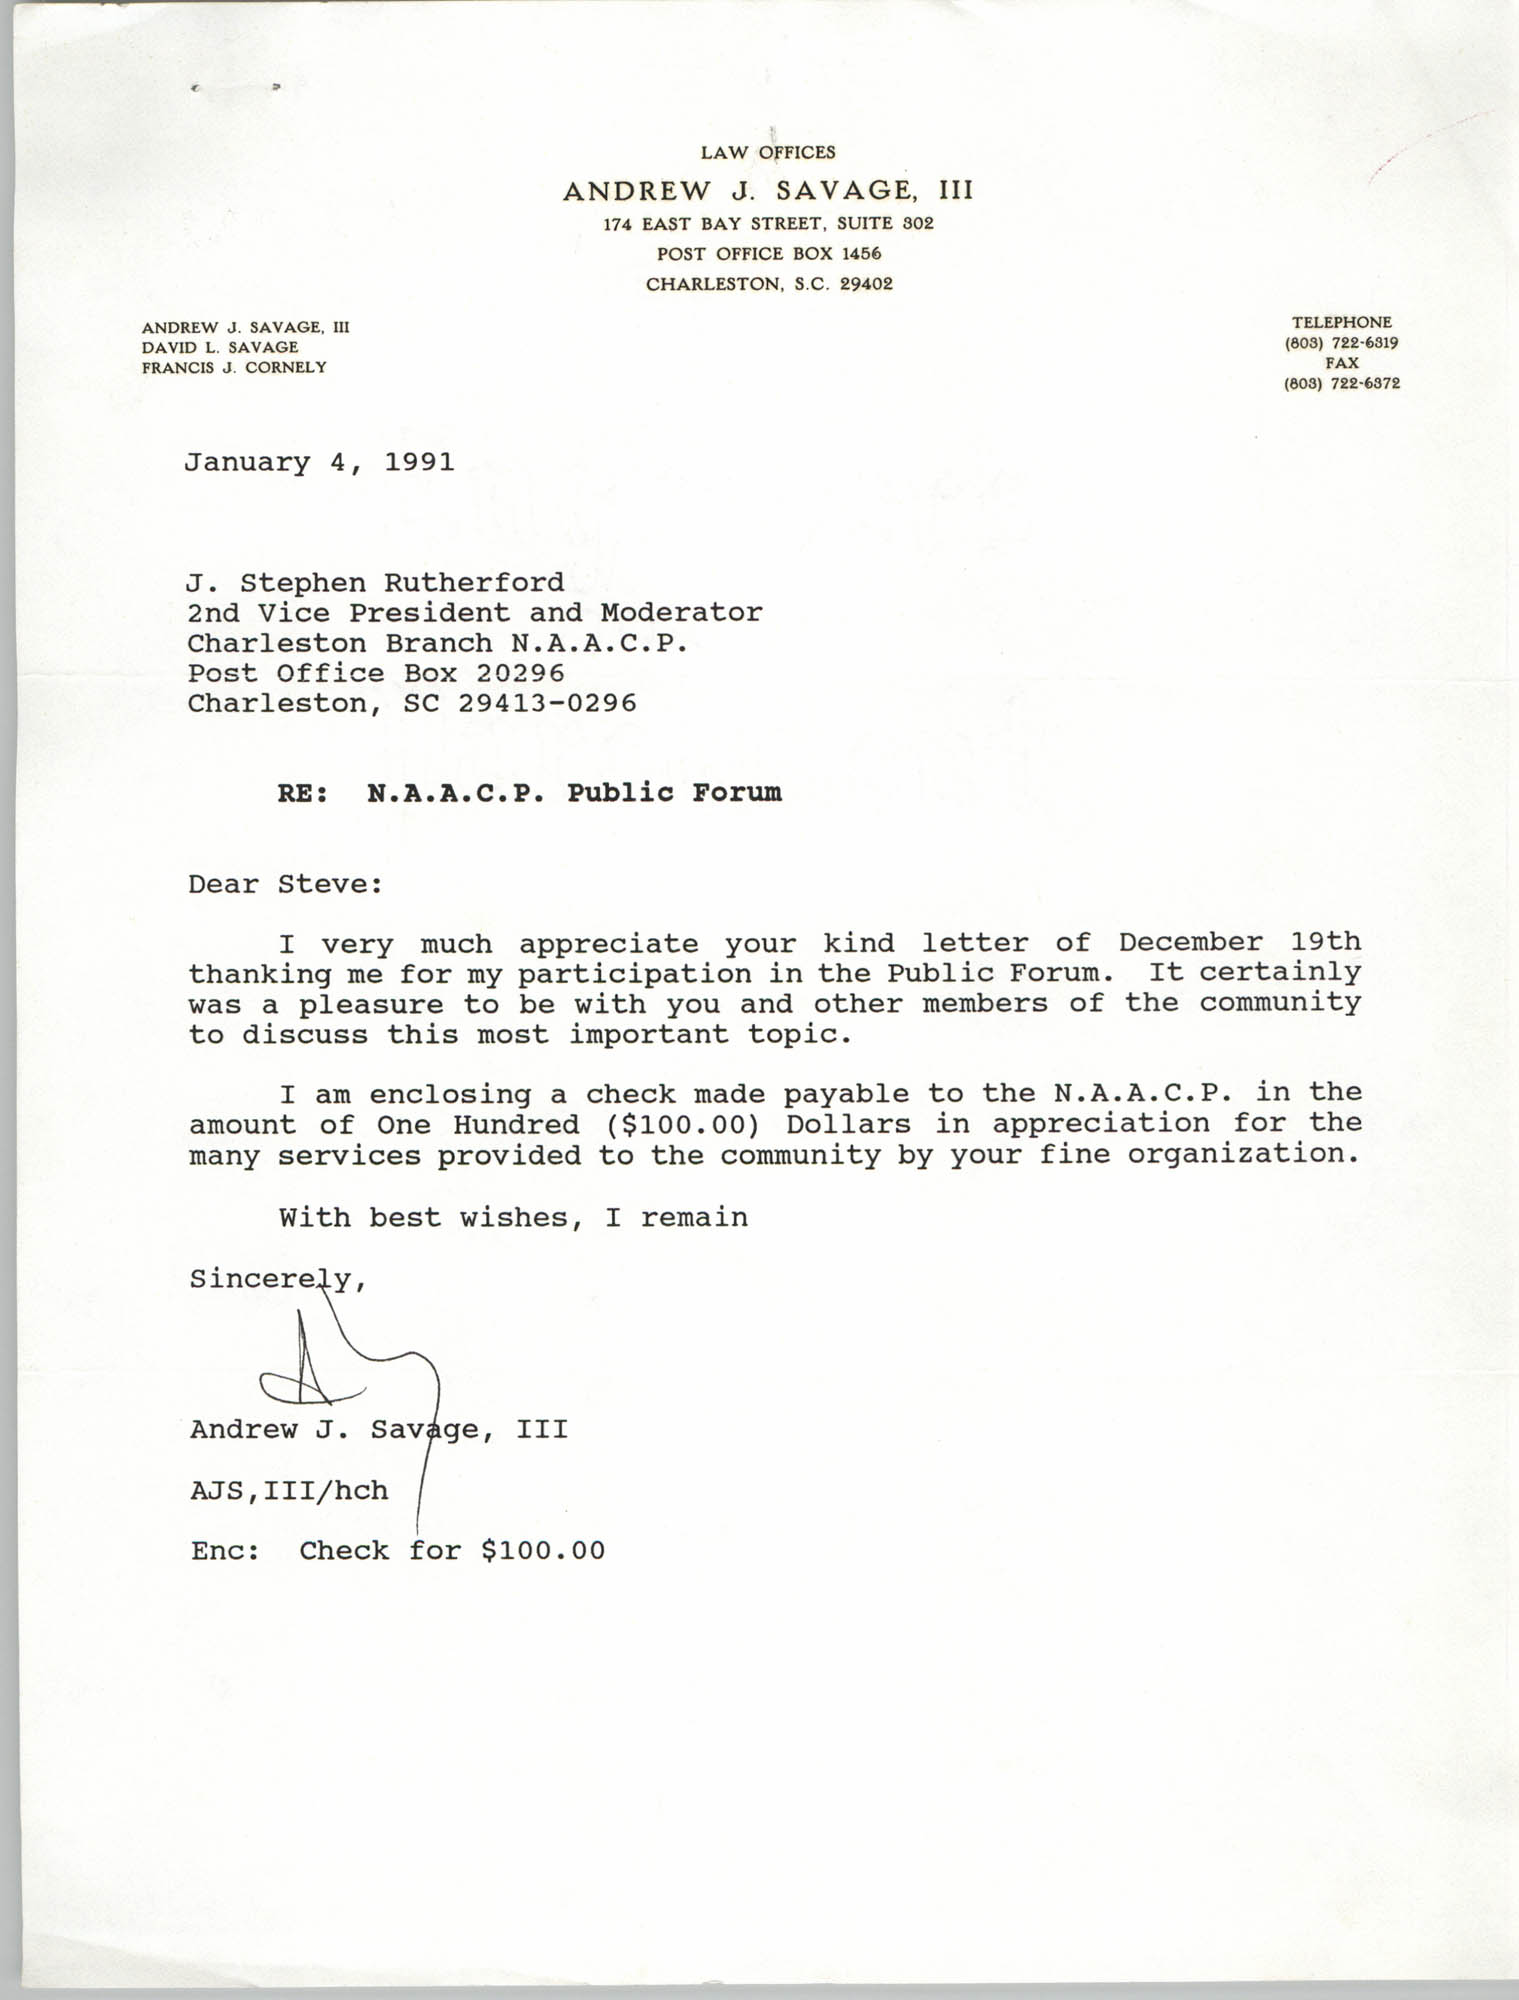 Letter from Andrew J. Savage, III to J. Stephen Rutherford, January 4, 1991